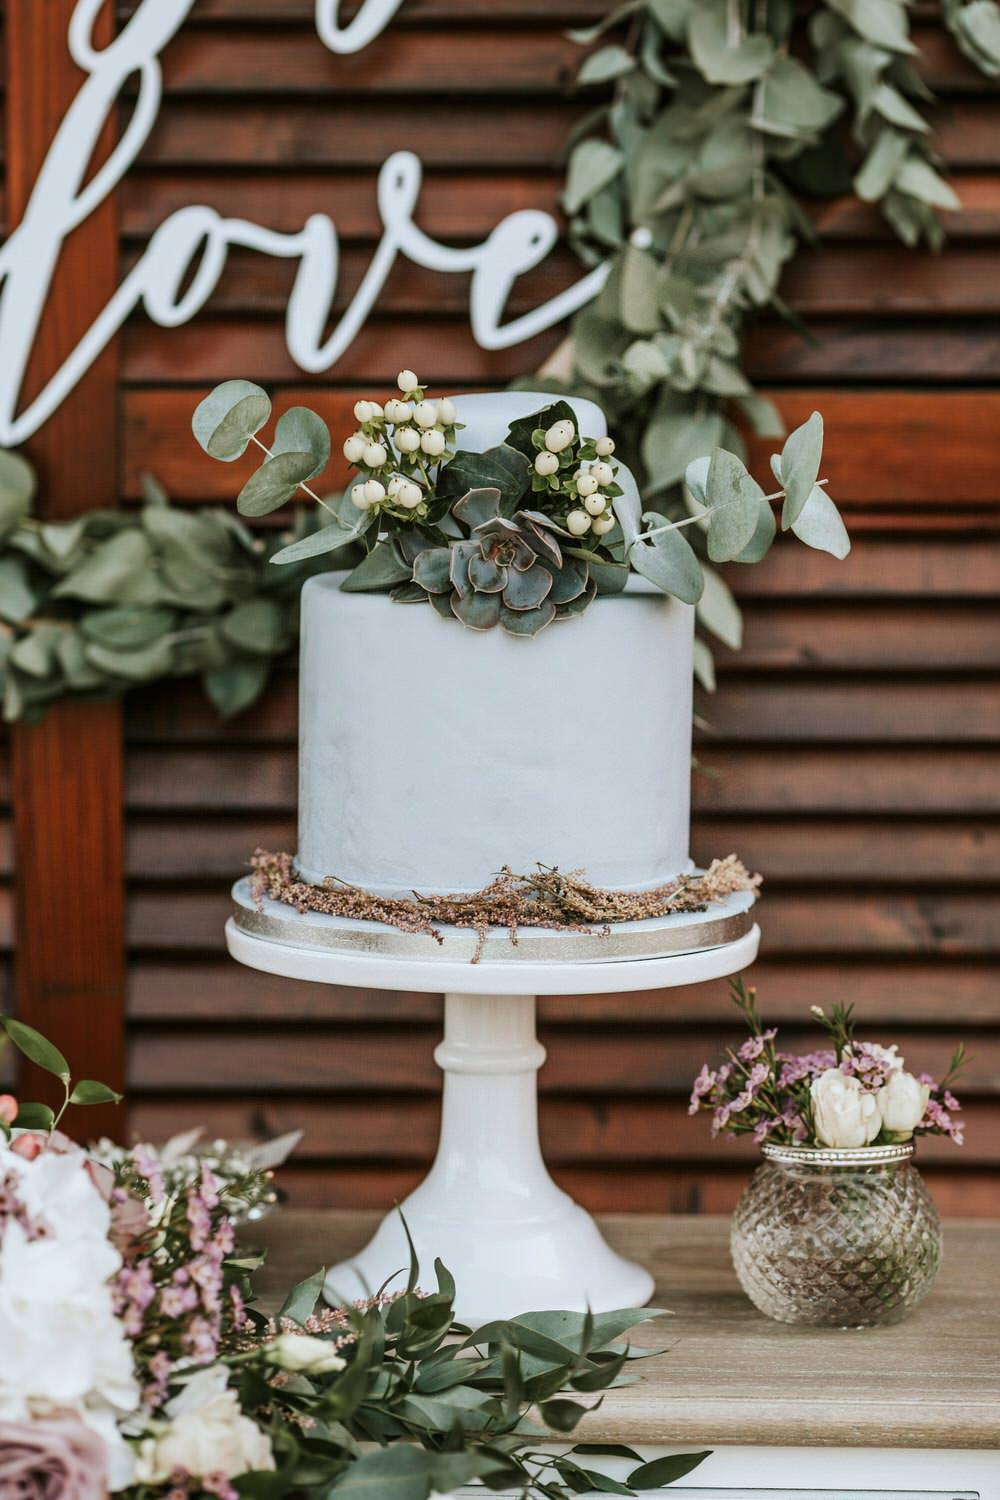 Cake Greenery Foliage Grey Flowers Succulent Stand Bohemian Beach Greece Destination Wedding Lighthouse Photography